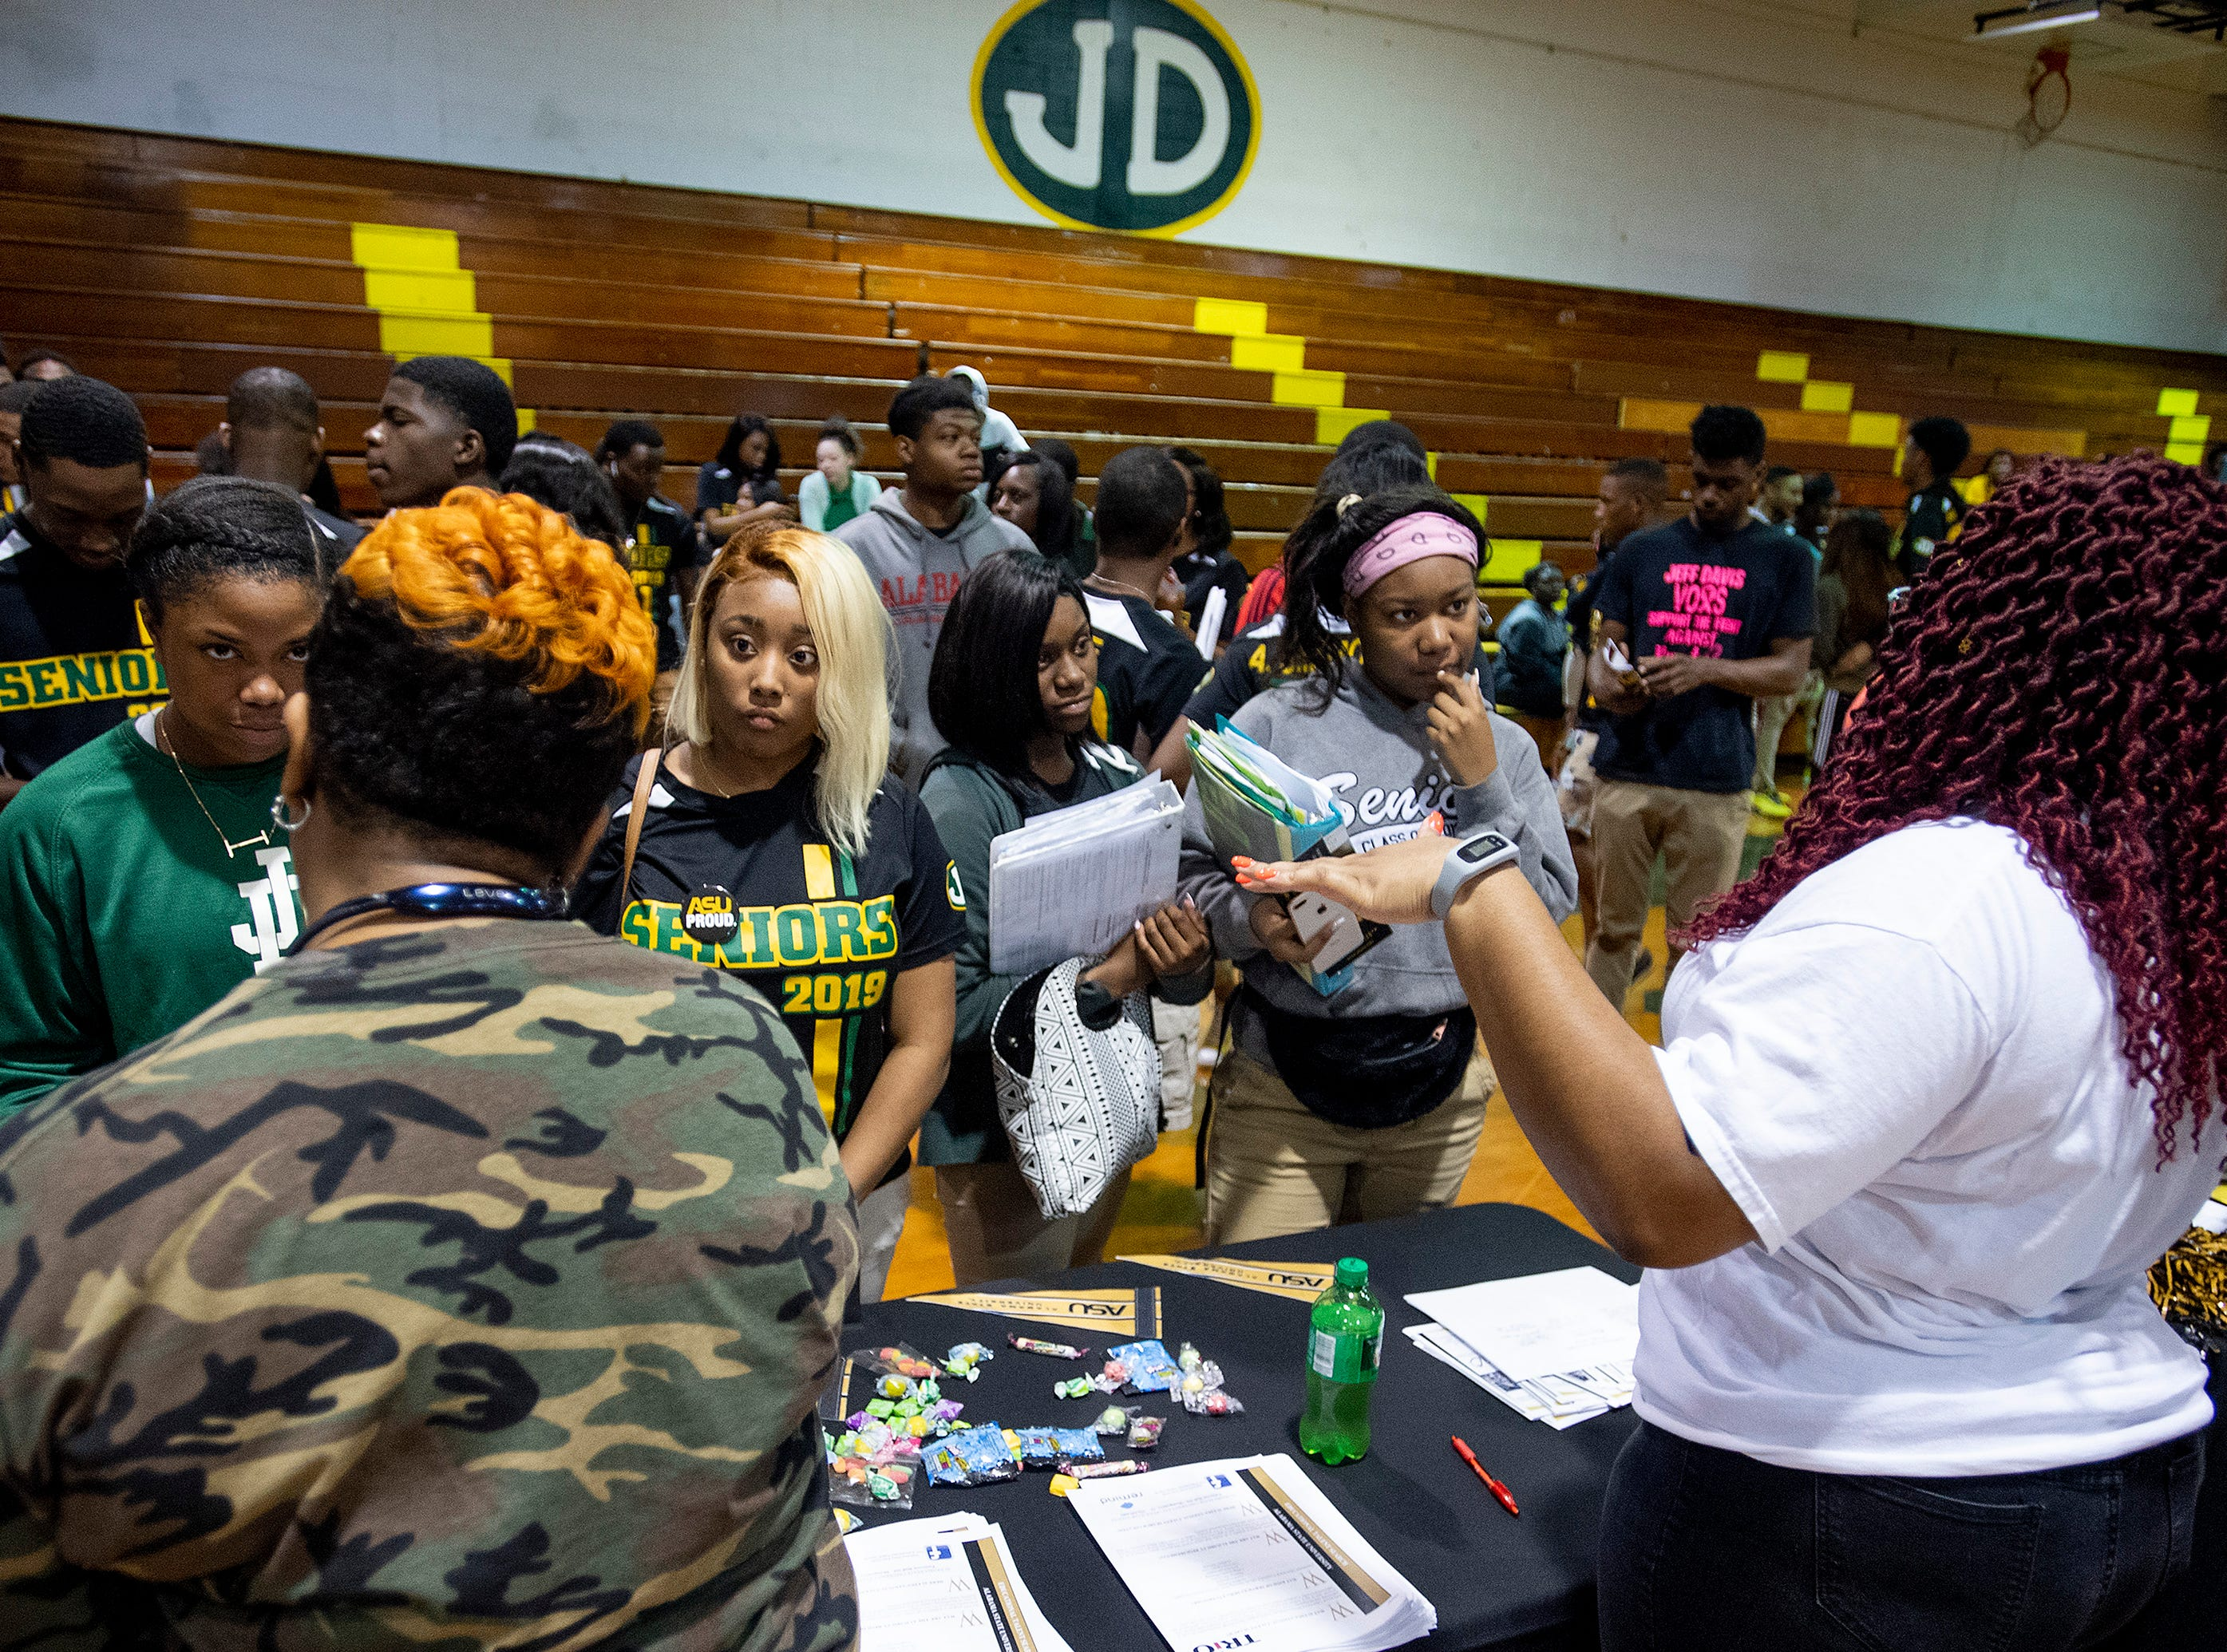 Jeff Davis High School seniors meet faculty and staff from Alabama State University during the ASU President's Tour visit to Jeff Davis High School in Montgomery, Ala., on Friday April 12, 2019.